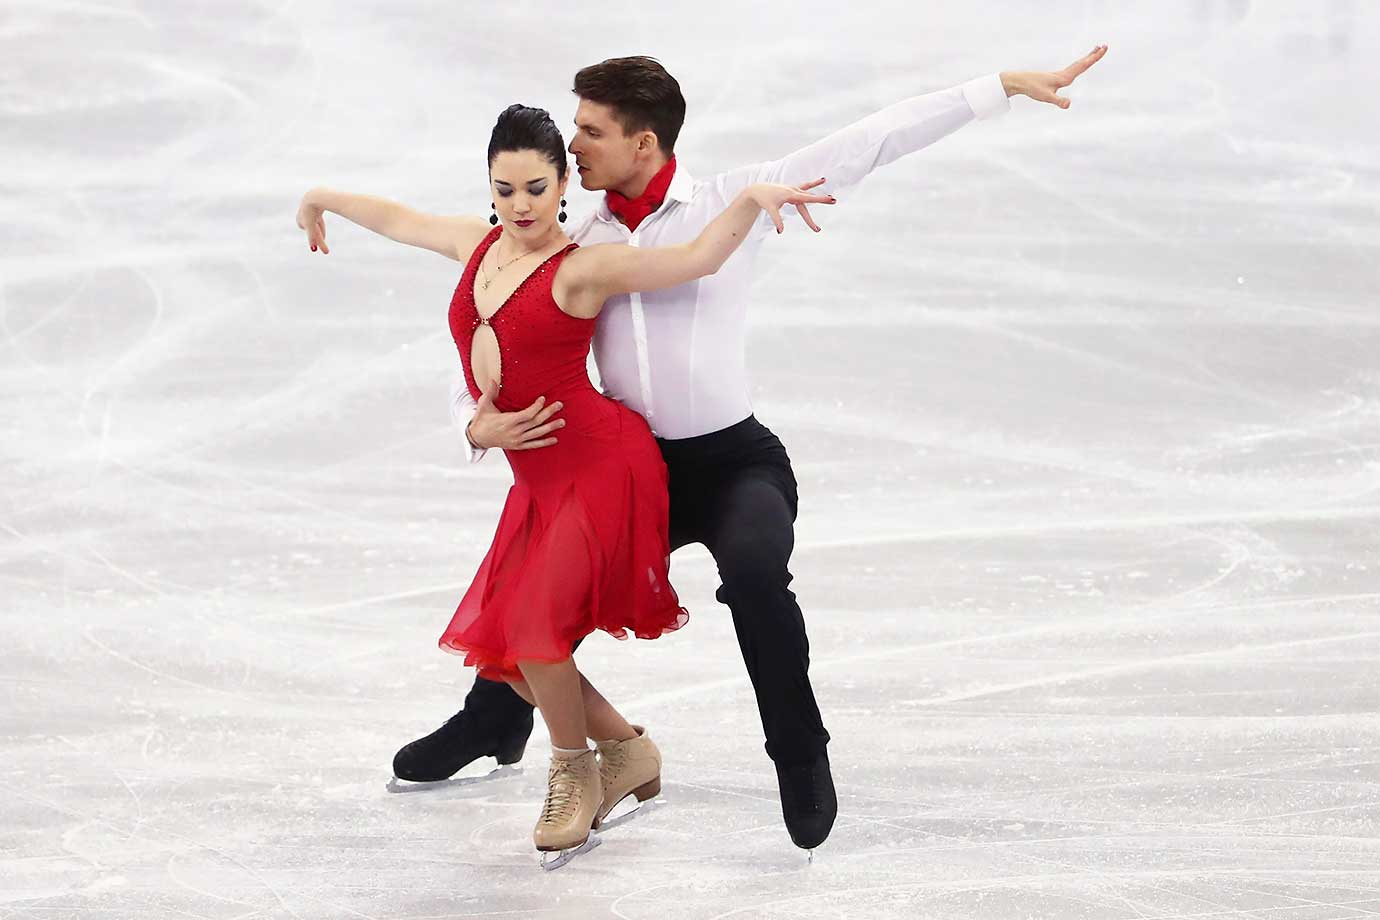 Celia Robledo and Luis Fenero of Spain in the Ice Dance Short program at the World Figure Skating Championships.